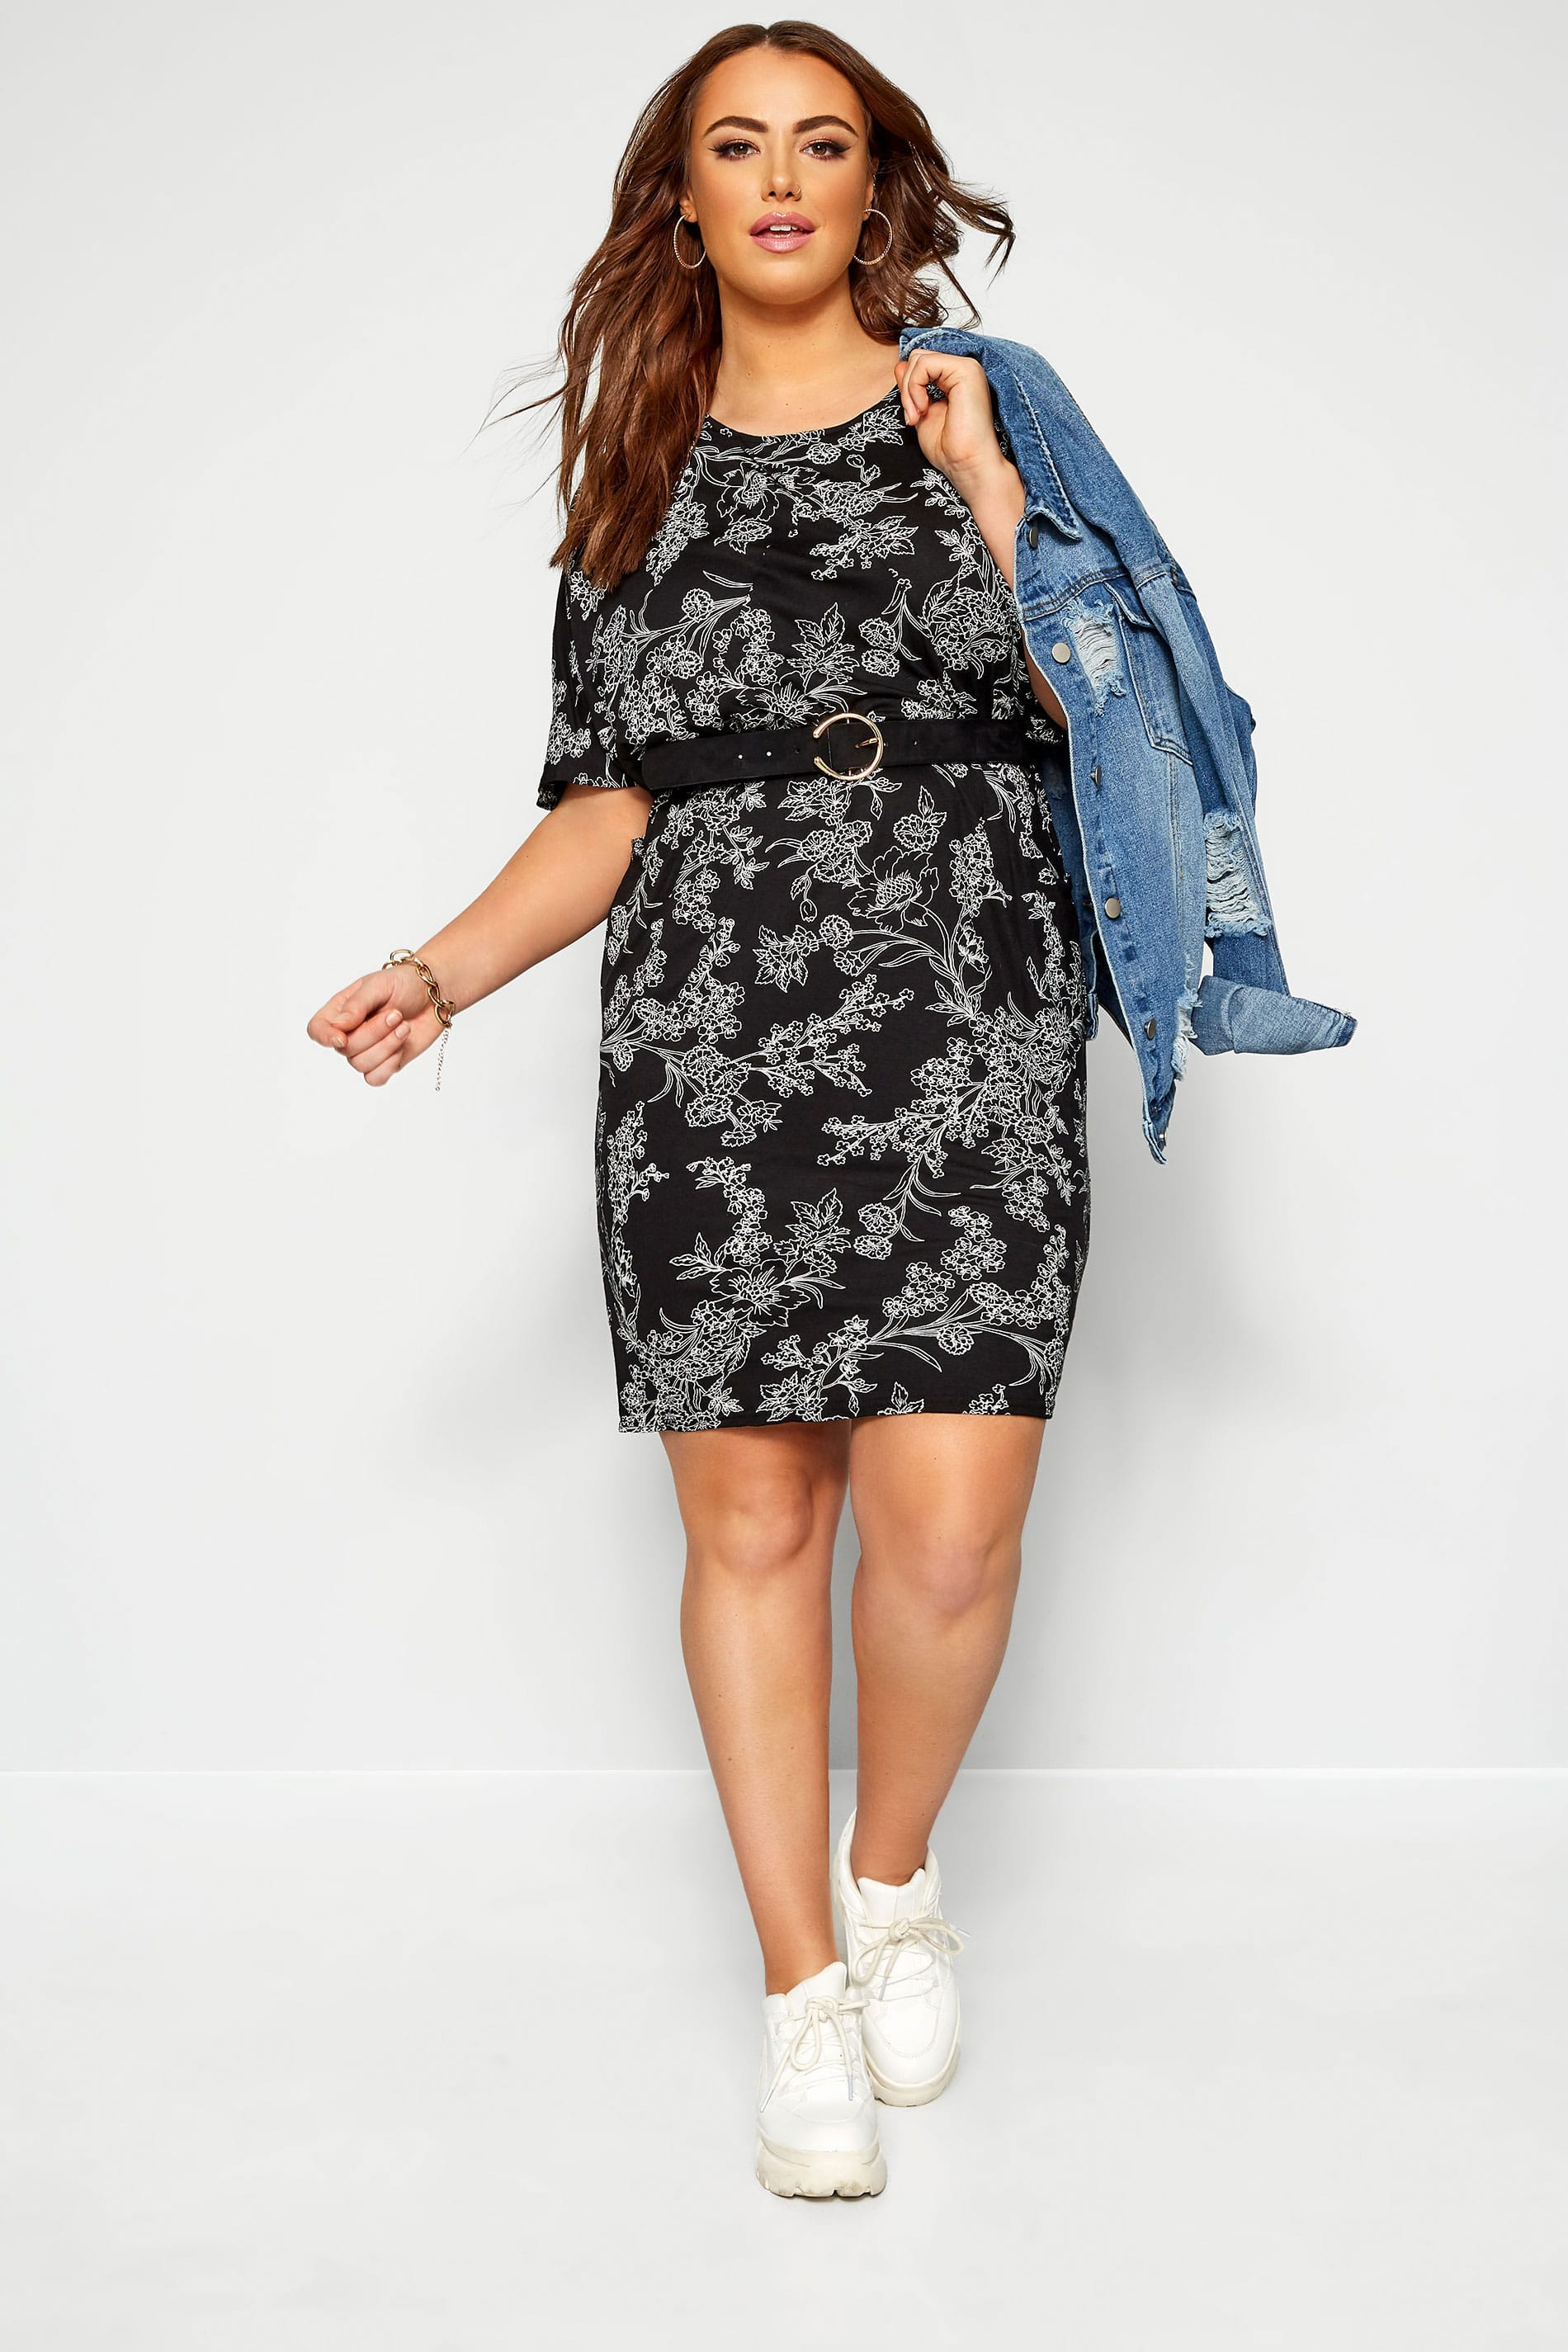 Black & White Floral Drape Pocket Cocoon Dress